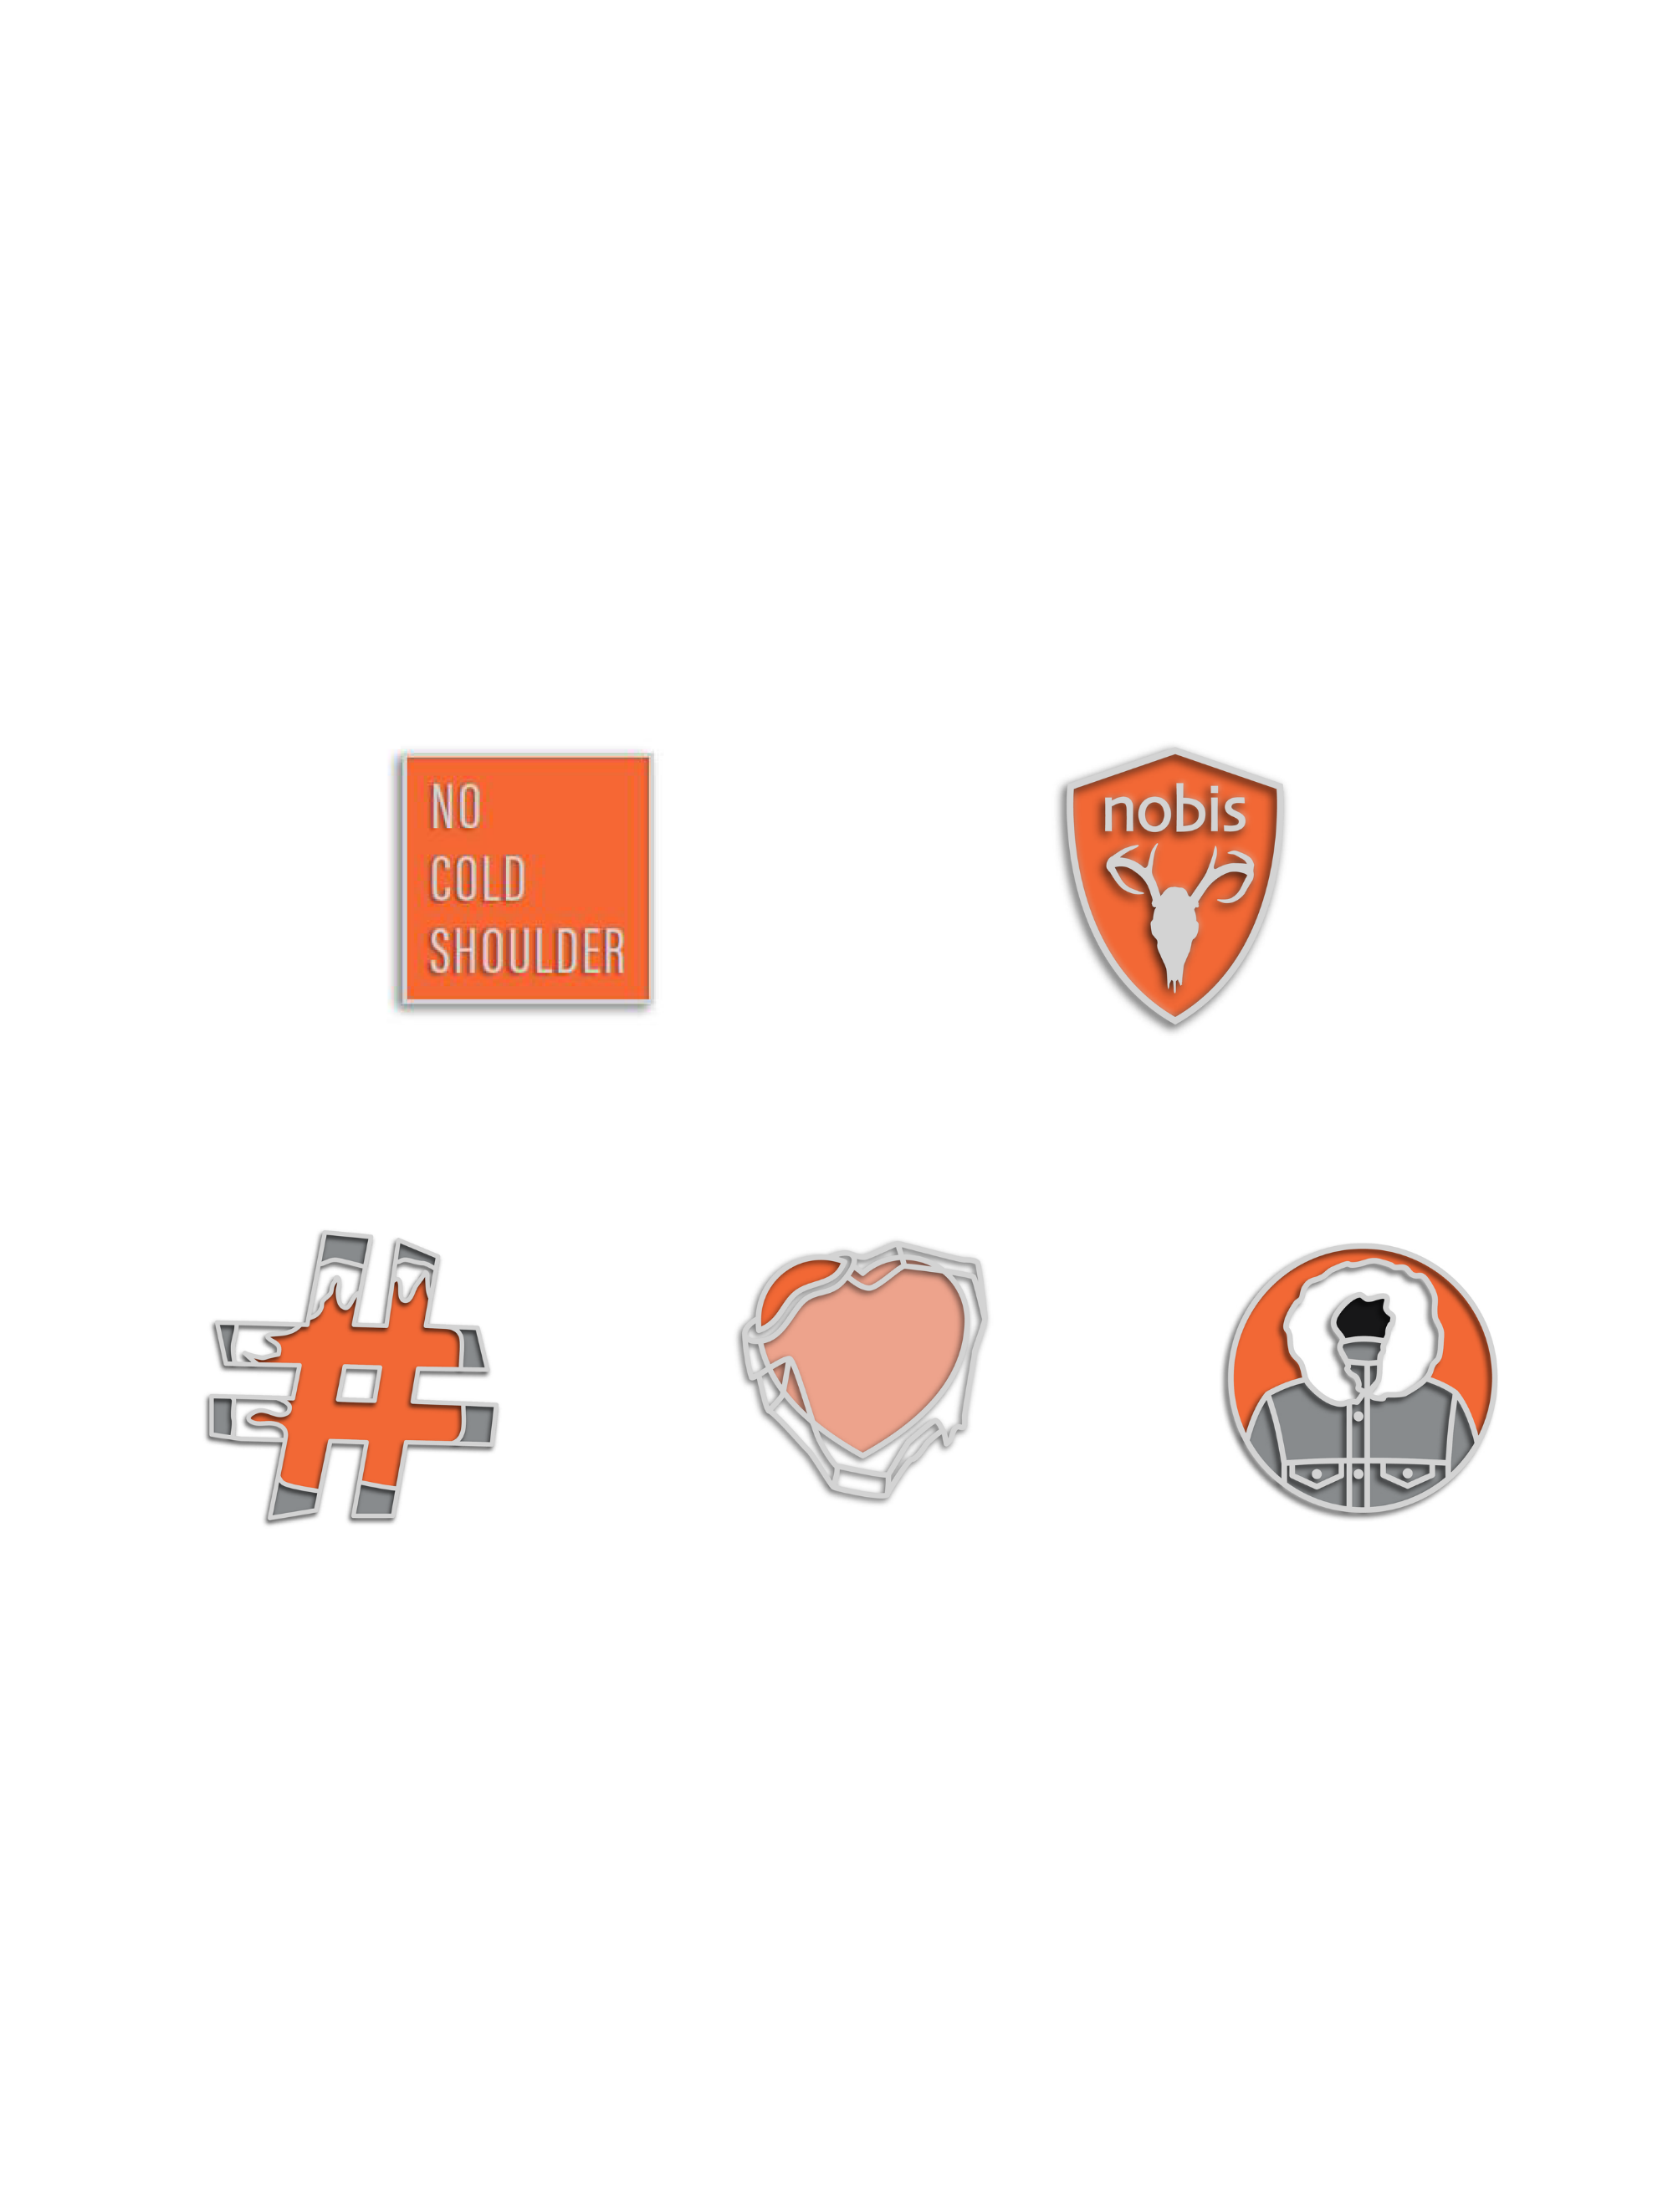 Set of five enamel pins that include an orange square with no cold shoulder printed in the center, and orange nobis logo shield, and orange and grey hashtag, an orange heart with ice over it and a orange and grey circle parka Pin Pack | color